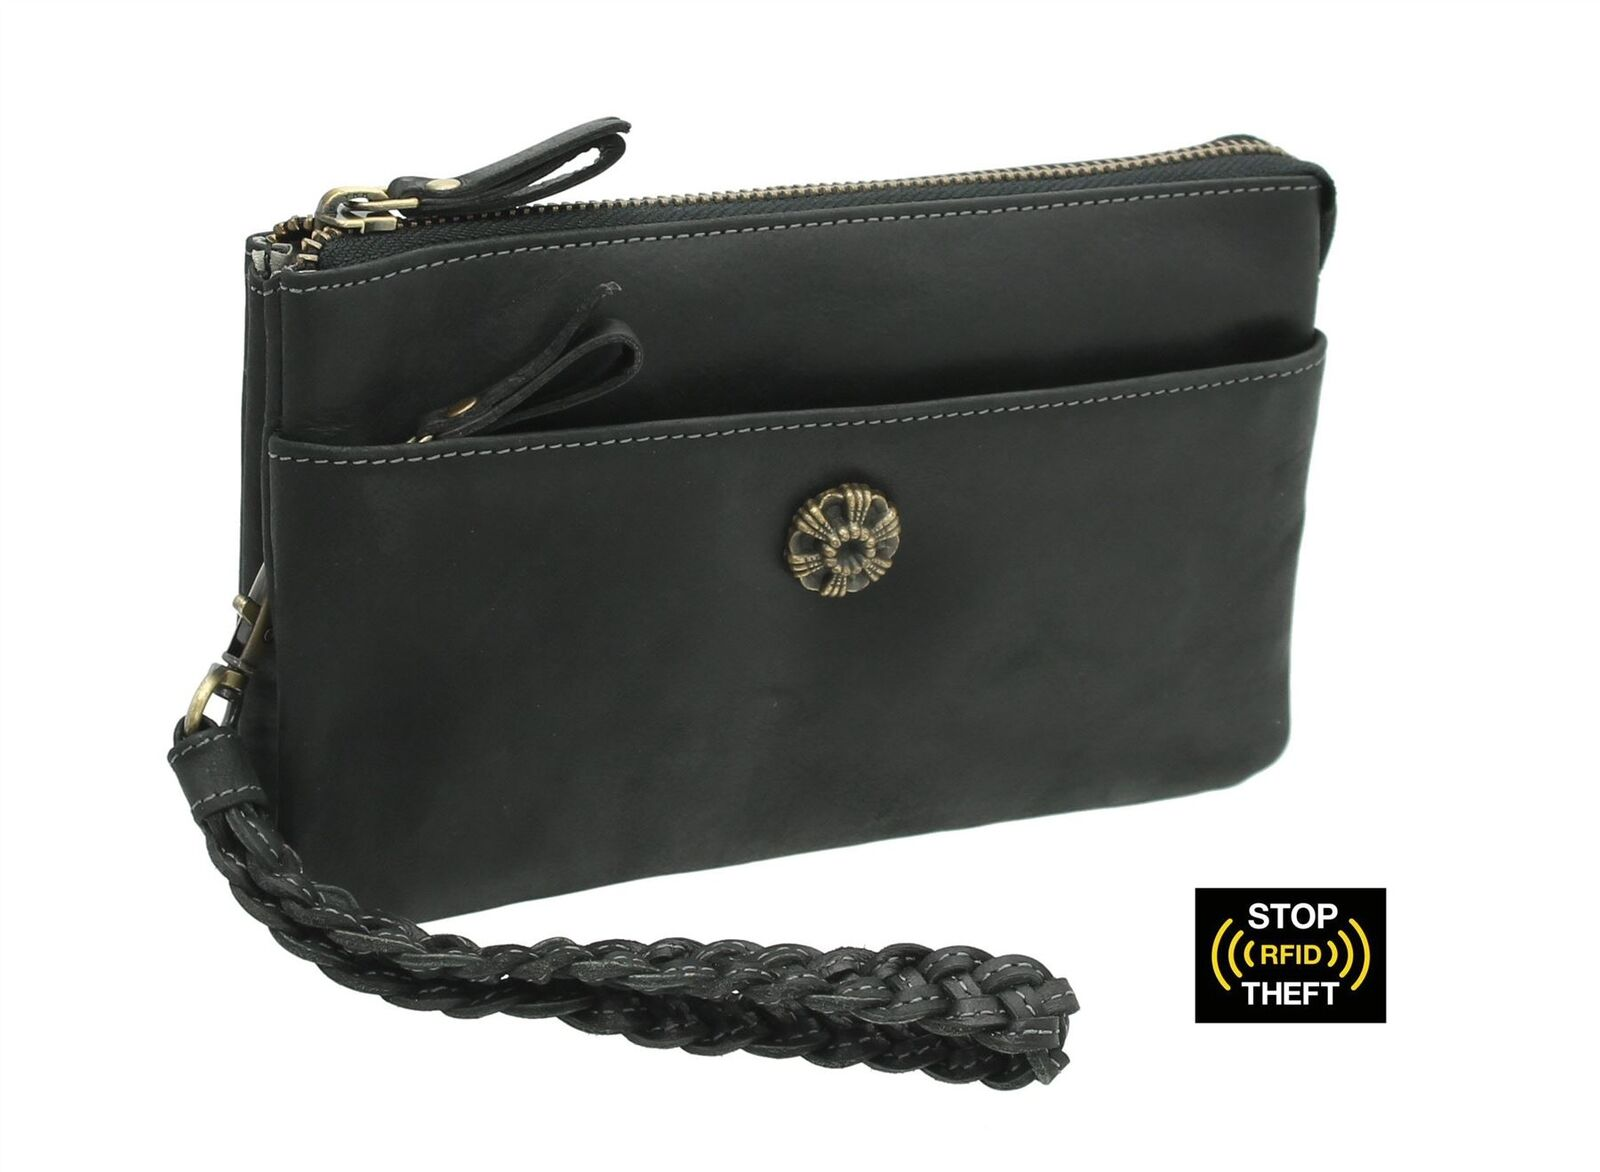 Mala Leather TUDOR Collection Leather Wristlet   Clutch - RFID Protected 7119_88 | Ausgezeichnetes Handwerk